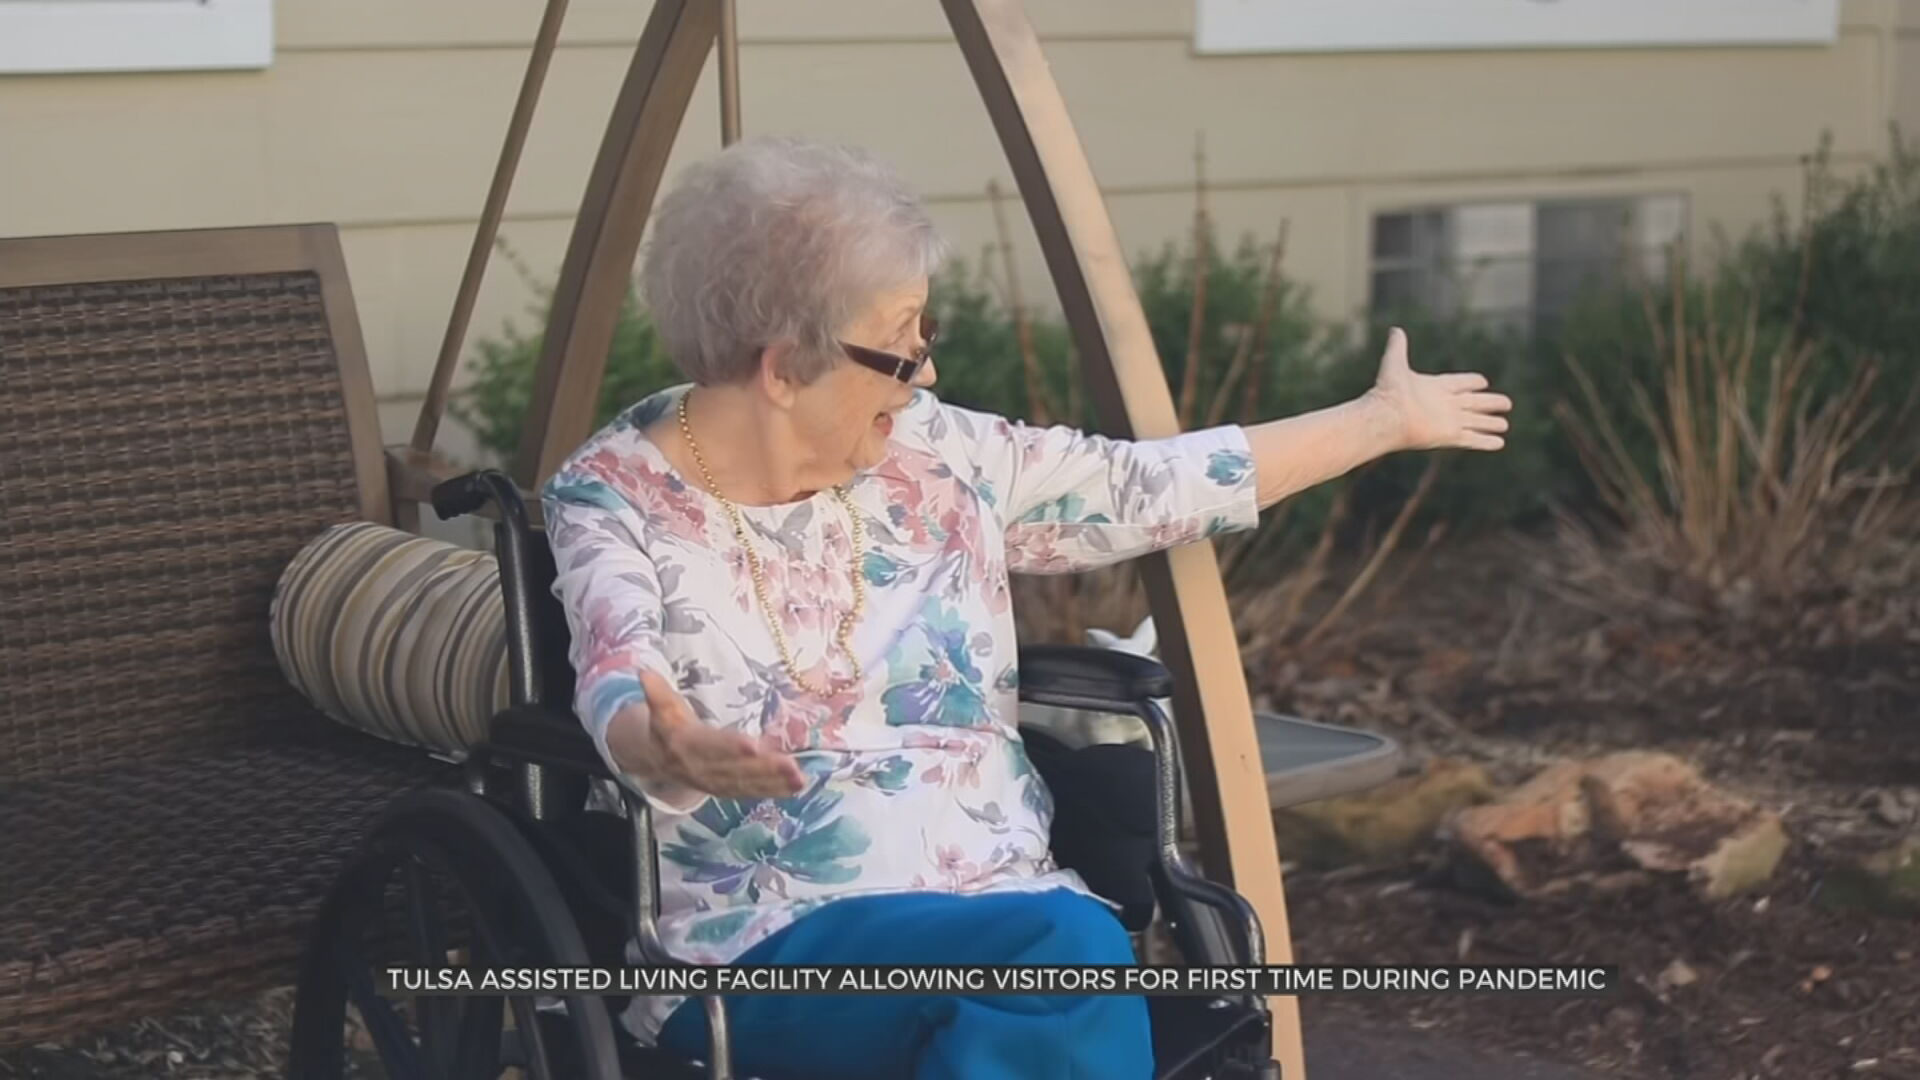 Tulsa Family Reunited As Assisted Living Facility Visitation Restrictions Ease